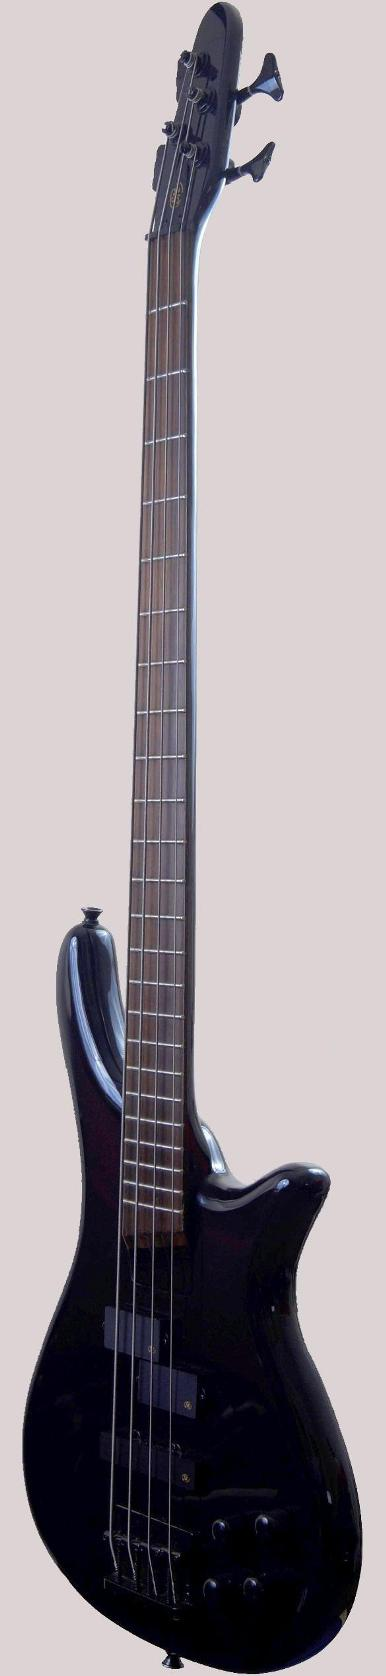 Chinese 4 string bass Guitar